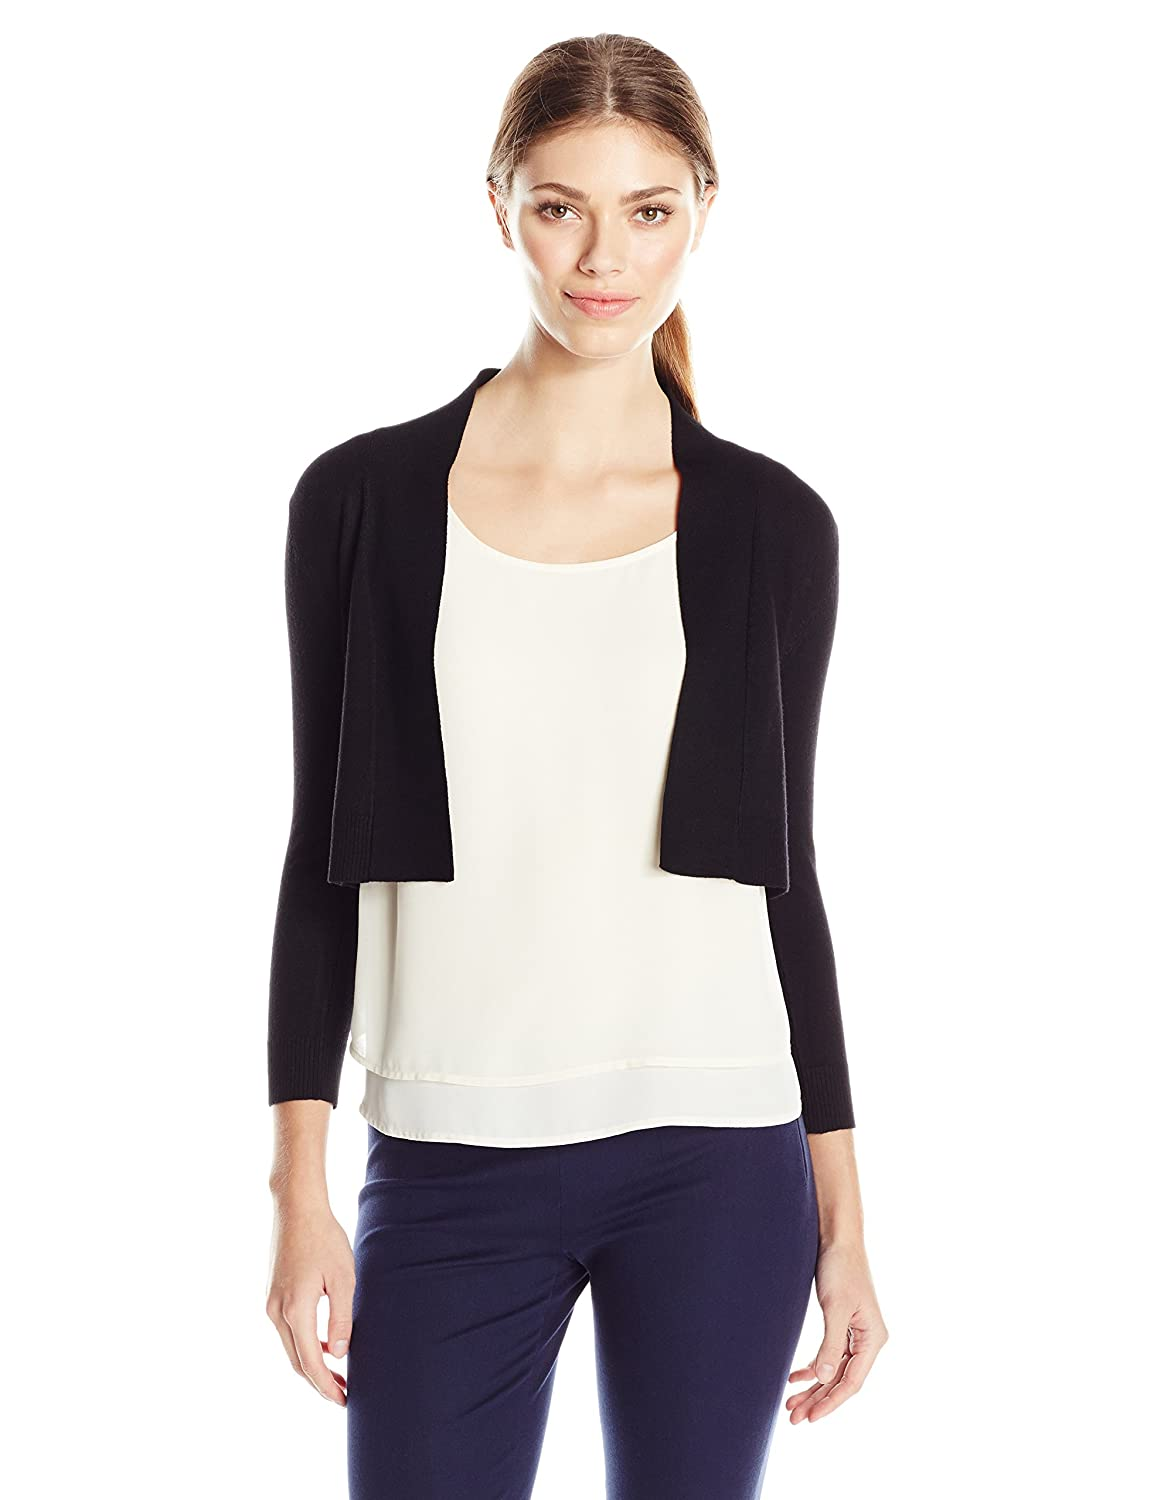 Calvin Klein Women's Knit Shrug Sweater at Amazon Women's Clothing ...